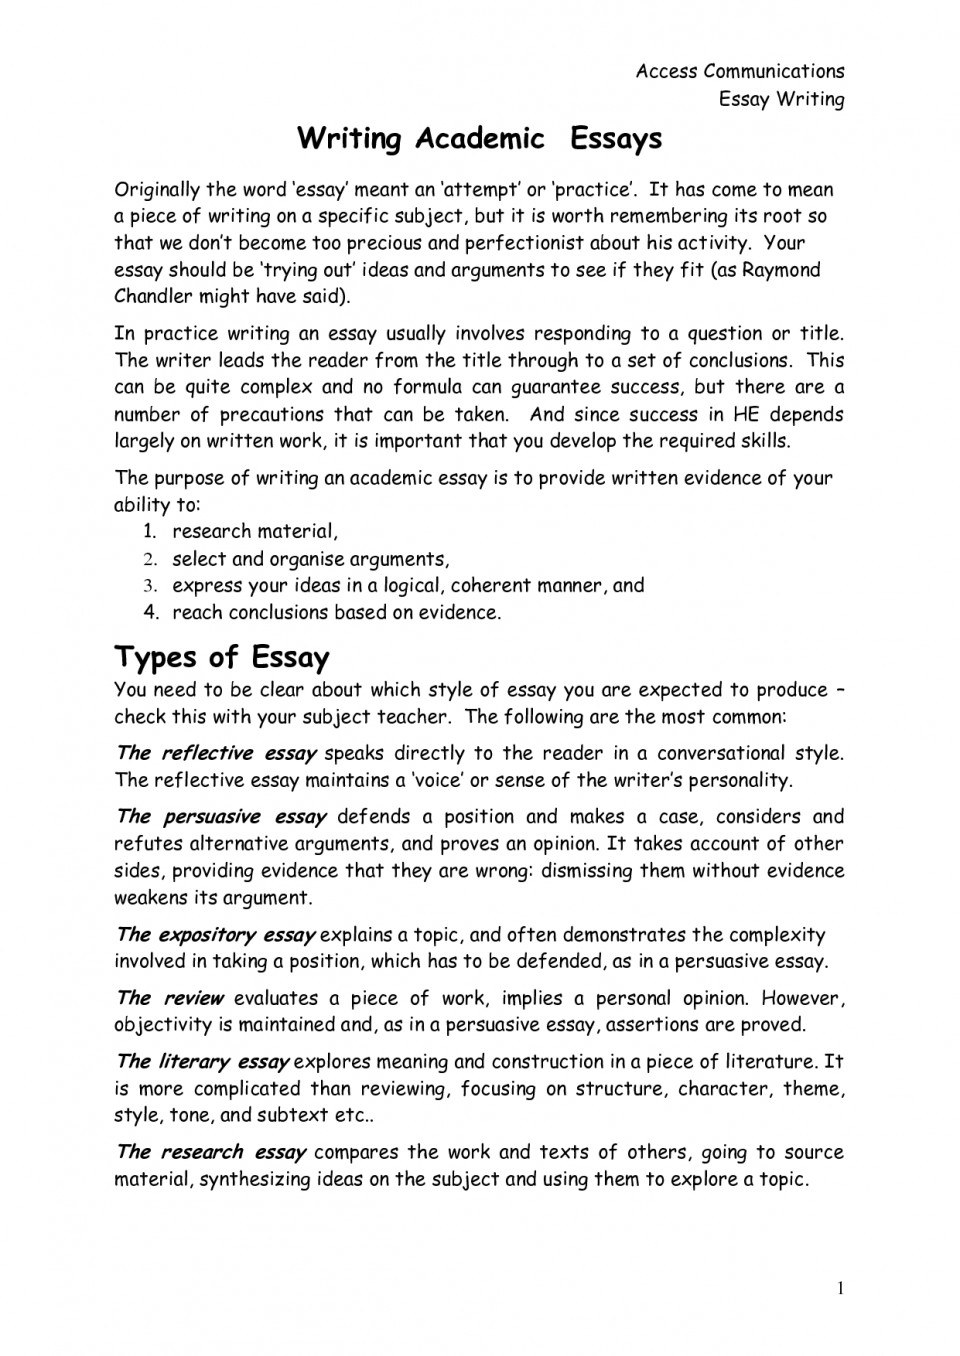 028 Reflective Essay On Academic Writing Unforgettable Example Examples About Life Pdf High School Students Apa 960